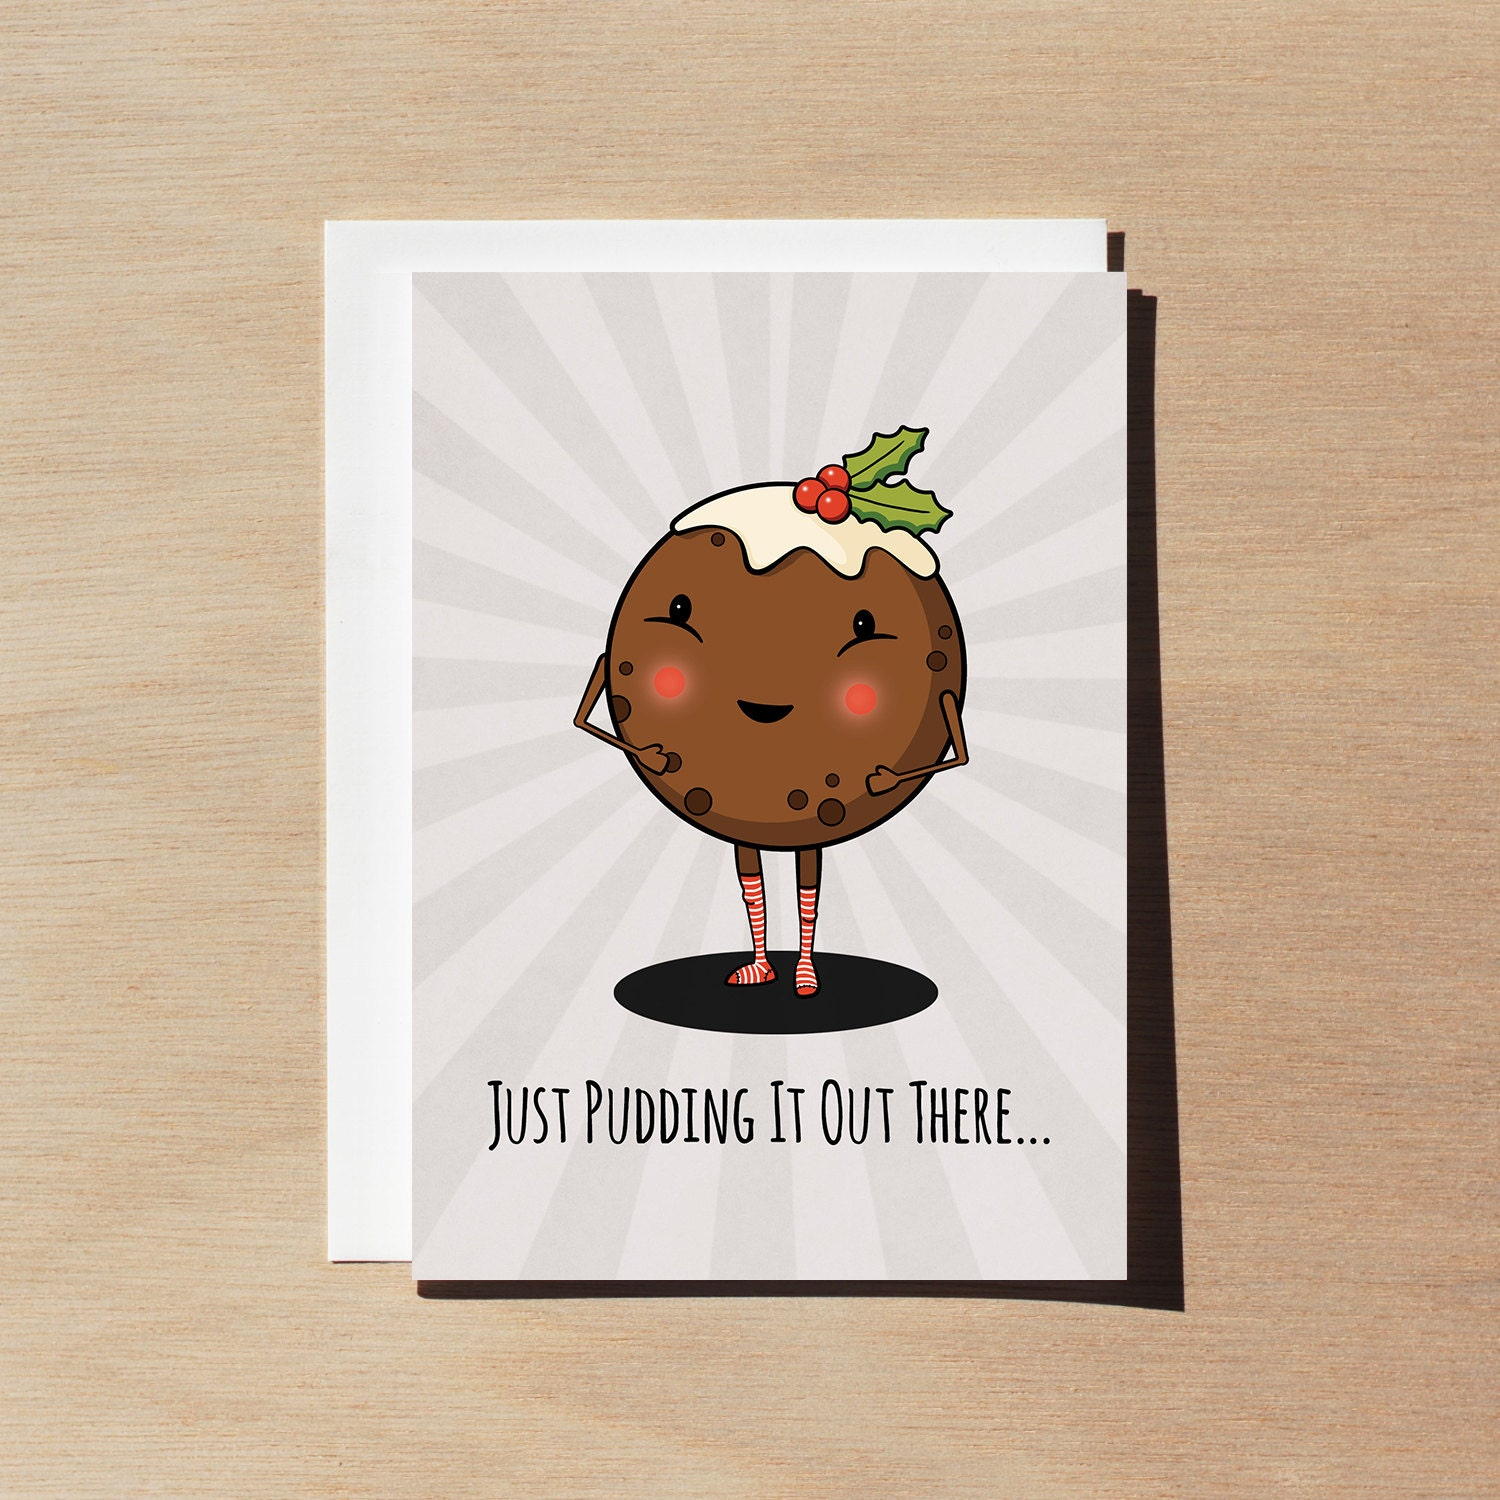 Cute funny Christmas Card Just Pudding it out There Xmas | Etsy